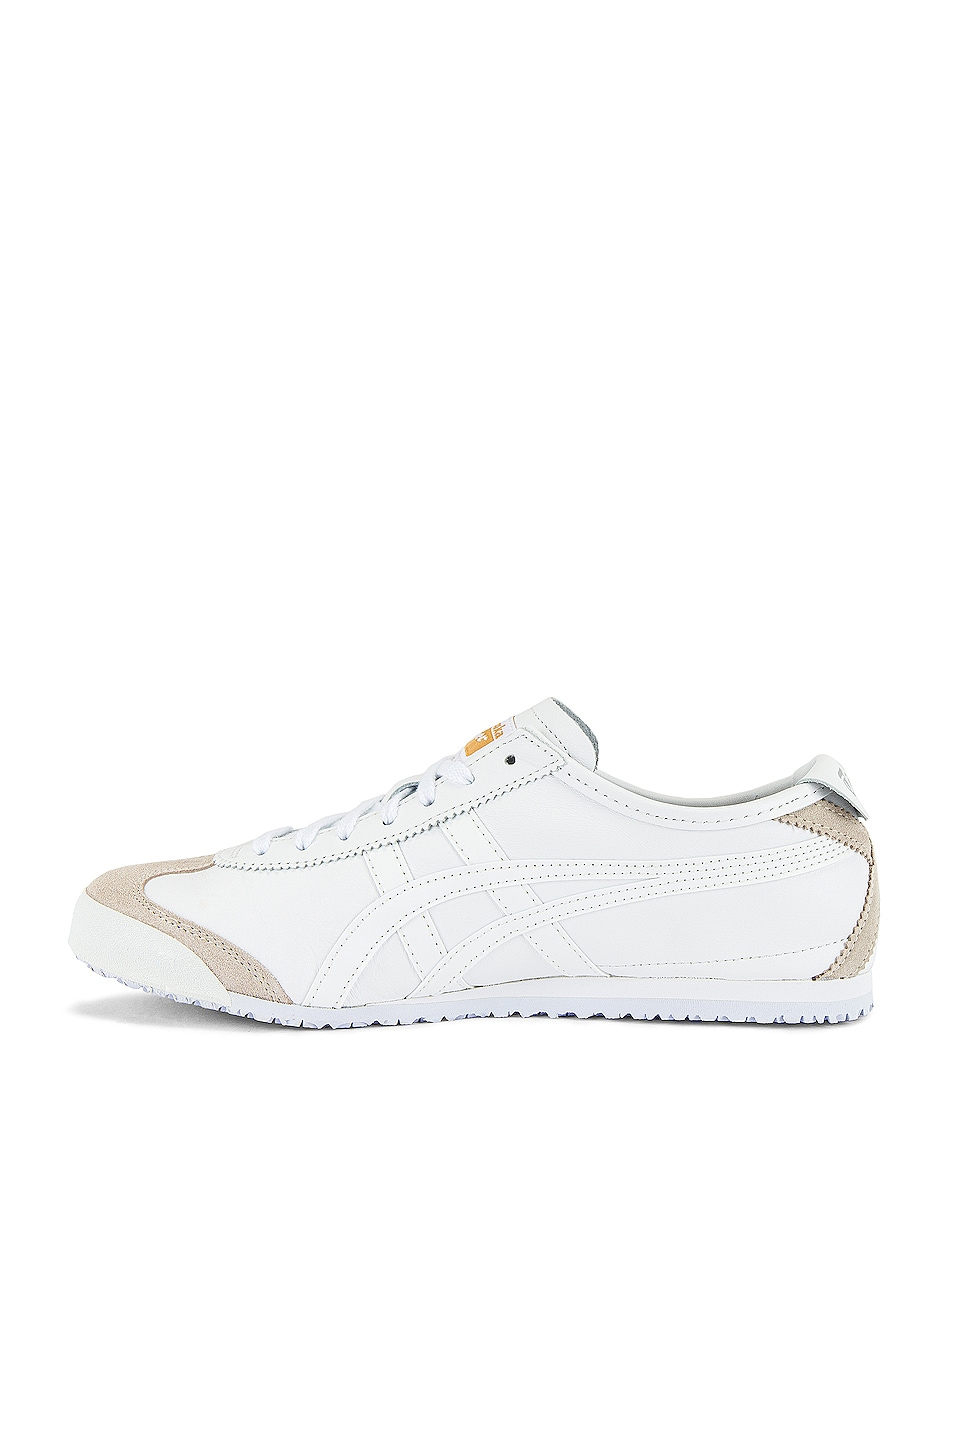 Image 5 of Onitsuka Tiger Mexico 66 in White White